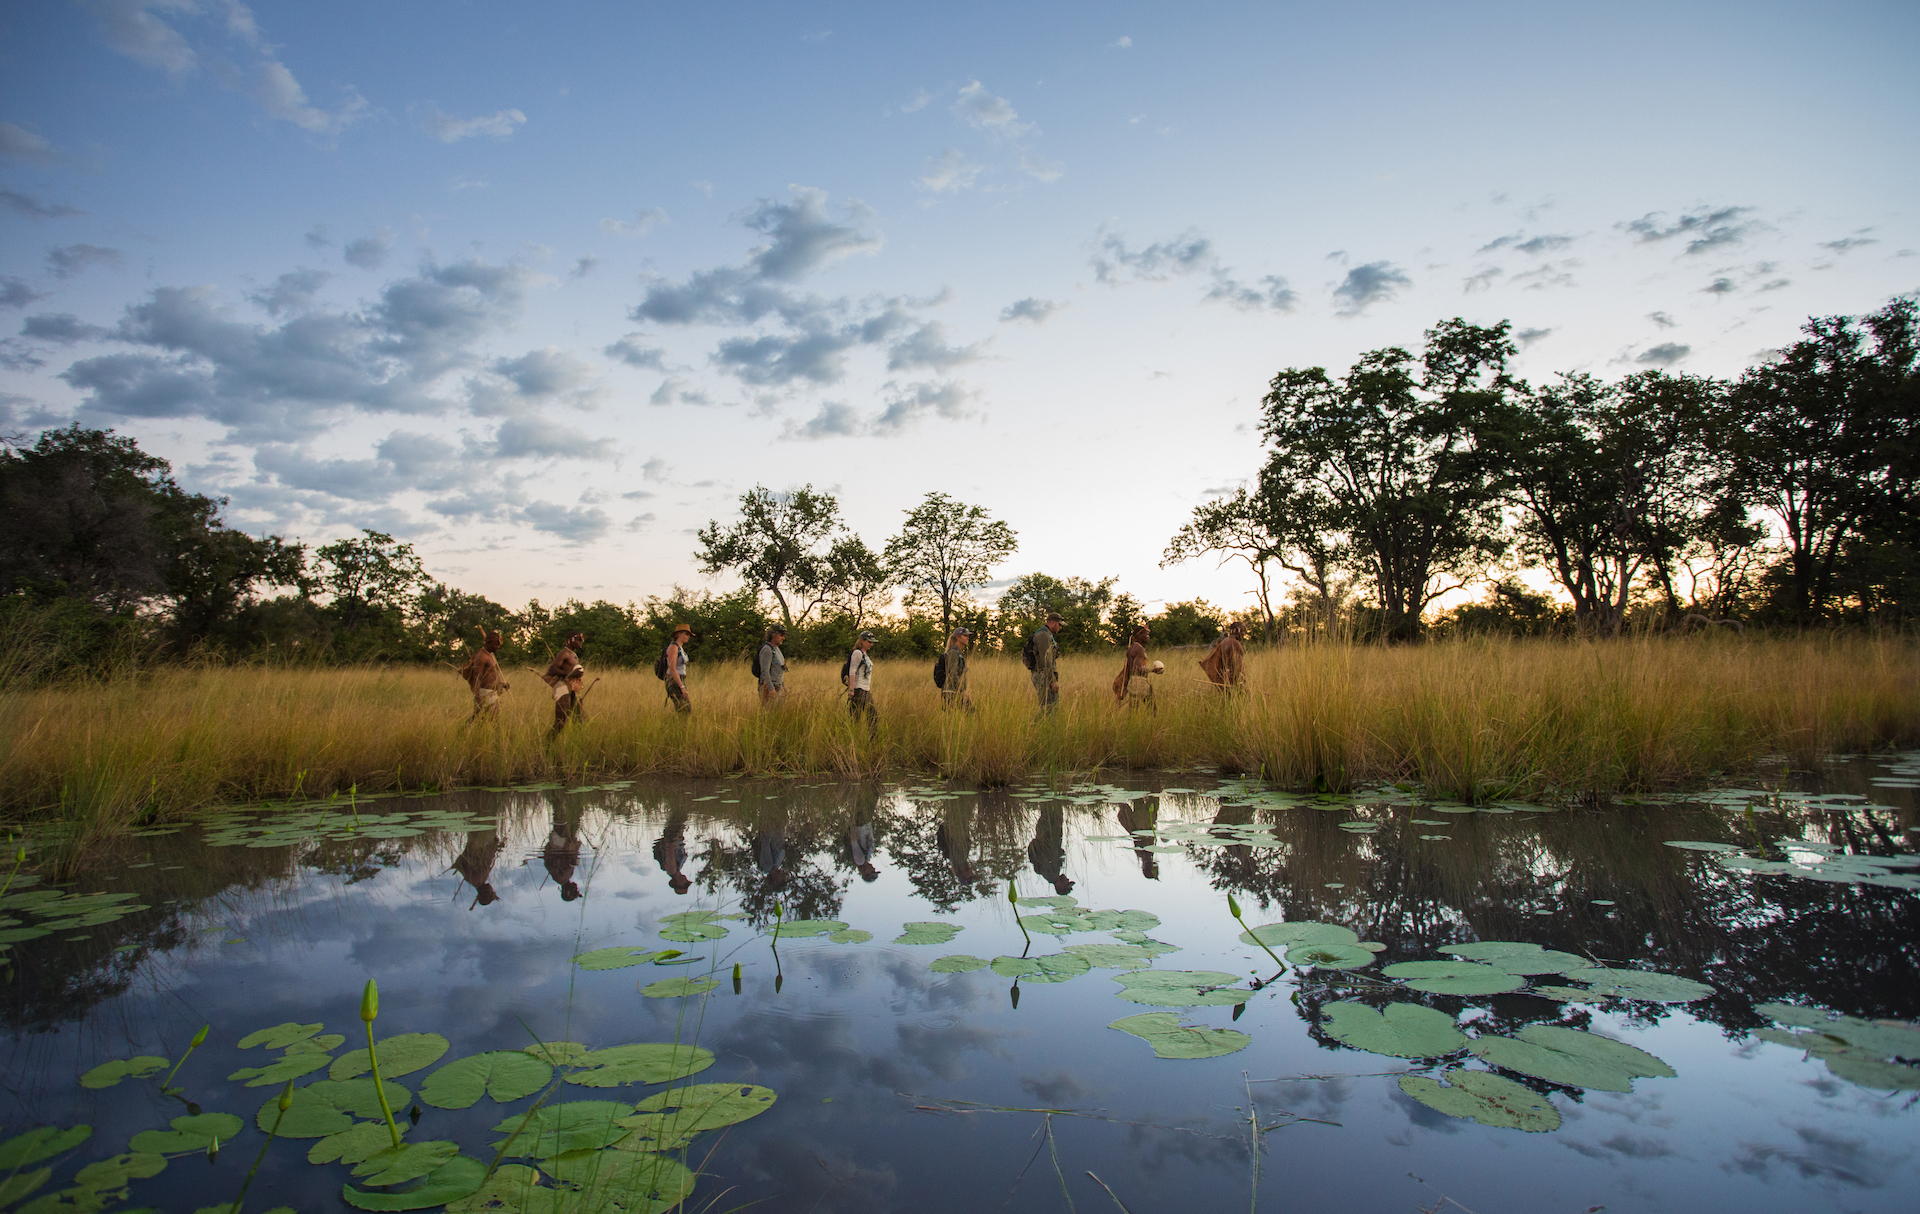 Launching with Botswana, a country of diverse beauty and outstanding wildlife, Great Plains Expeditions - Botswana will bring guests back to true remoteness and pristine wilderness for an exclusive journey of discovery.